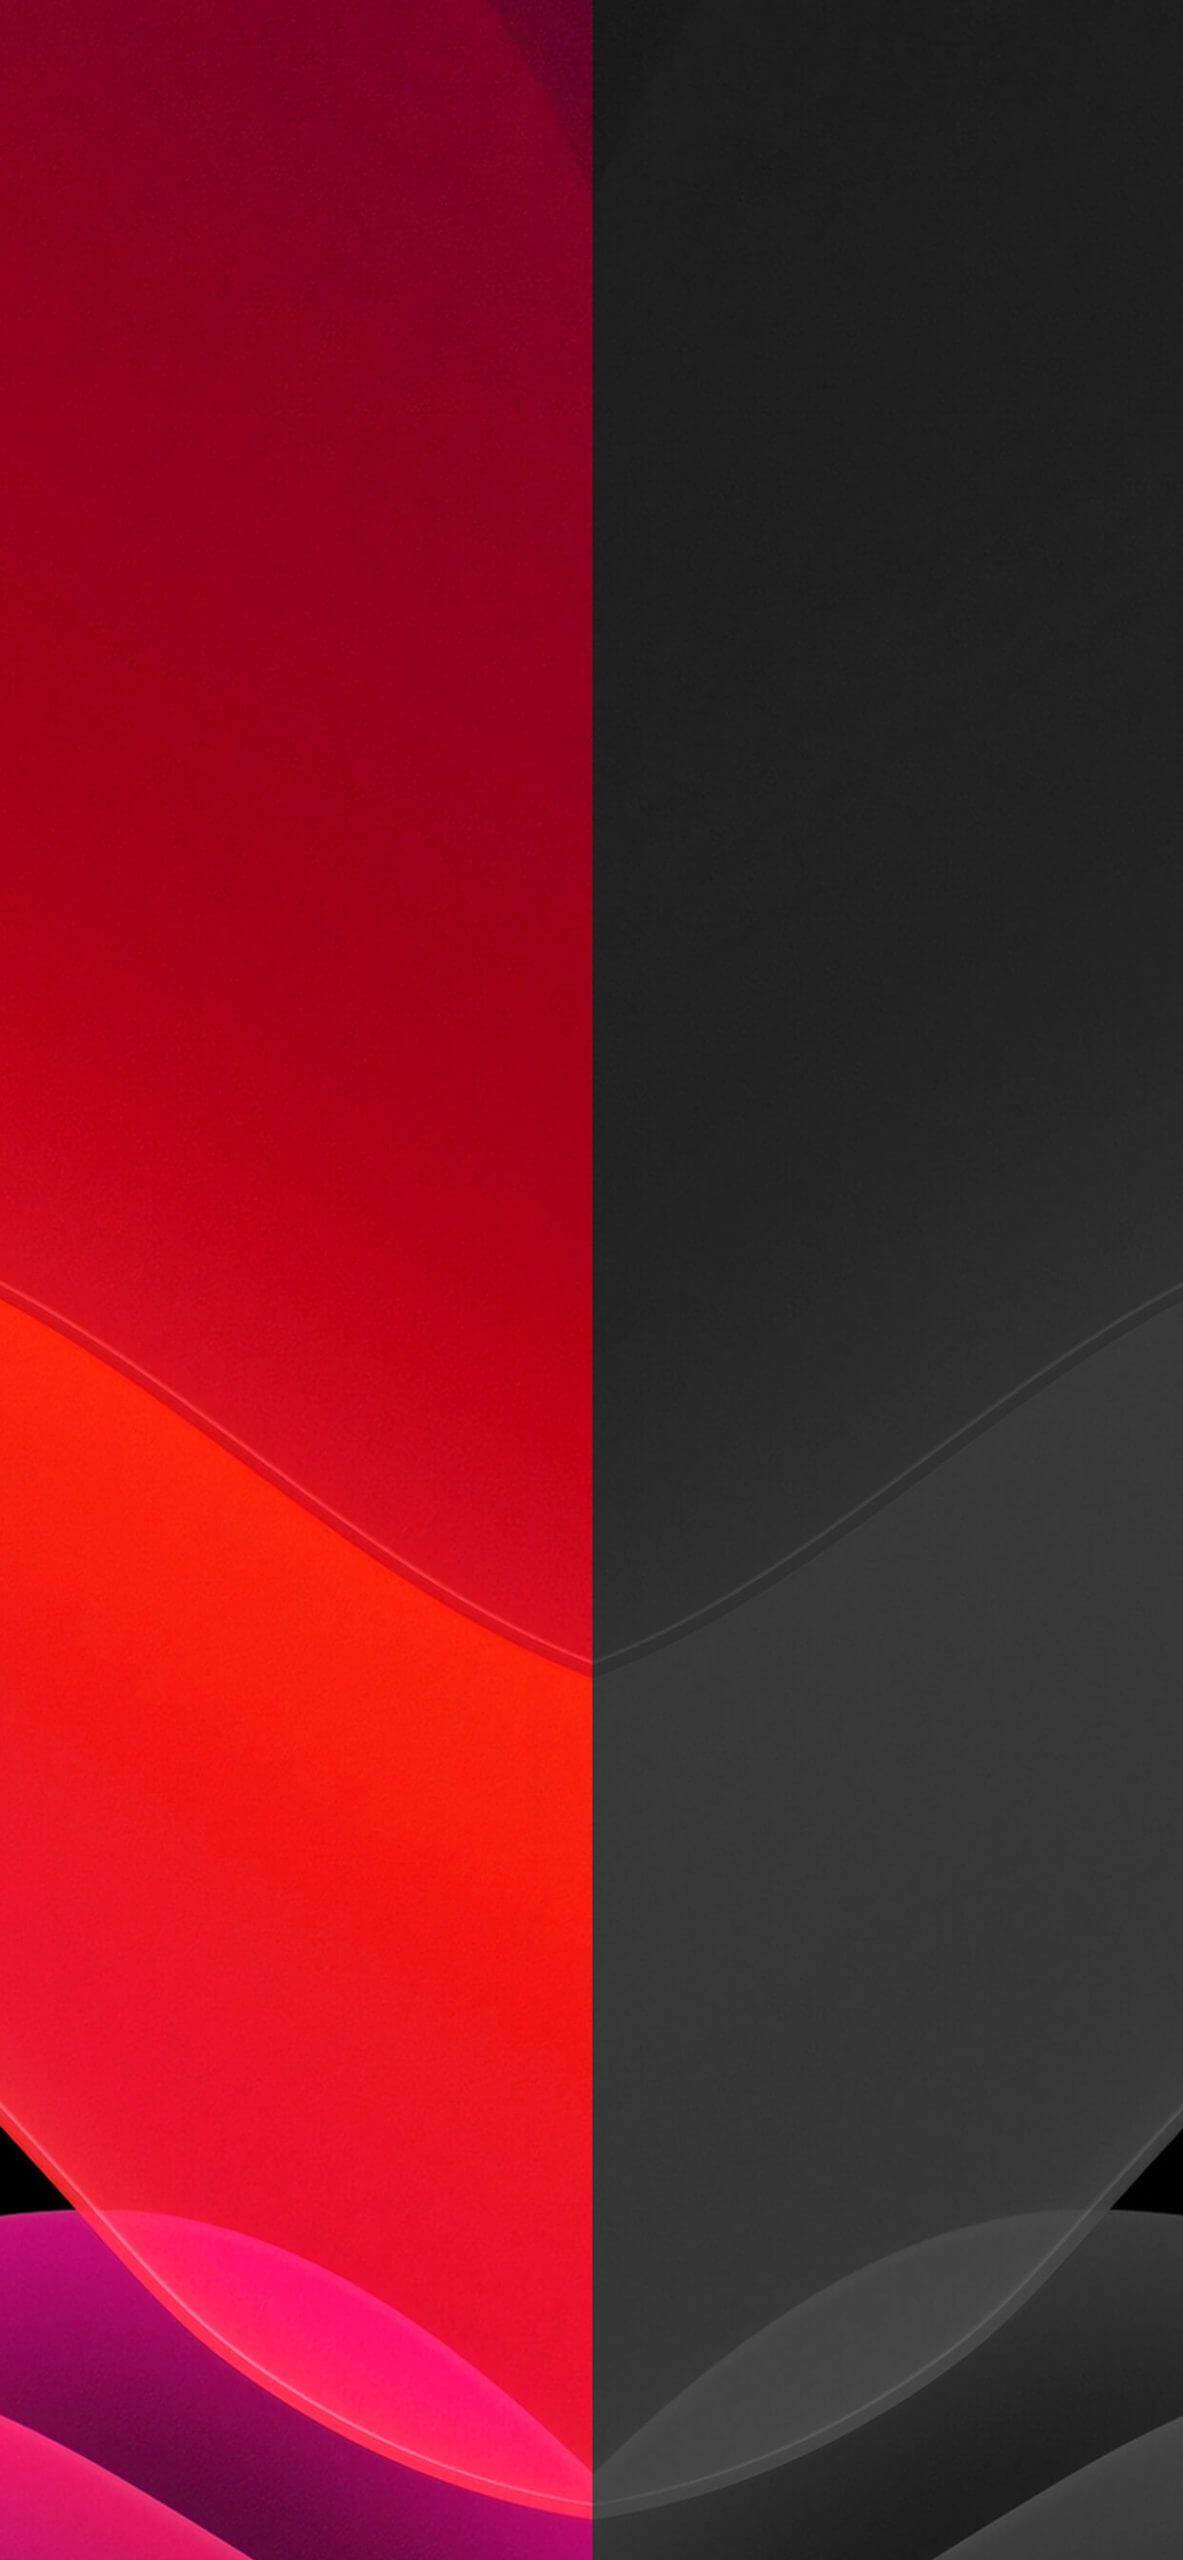 red or black? can't decide